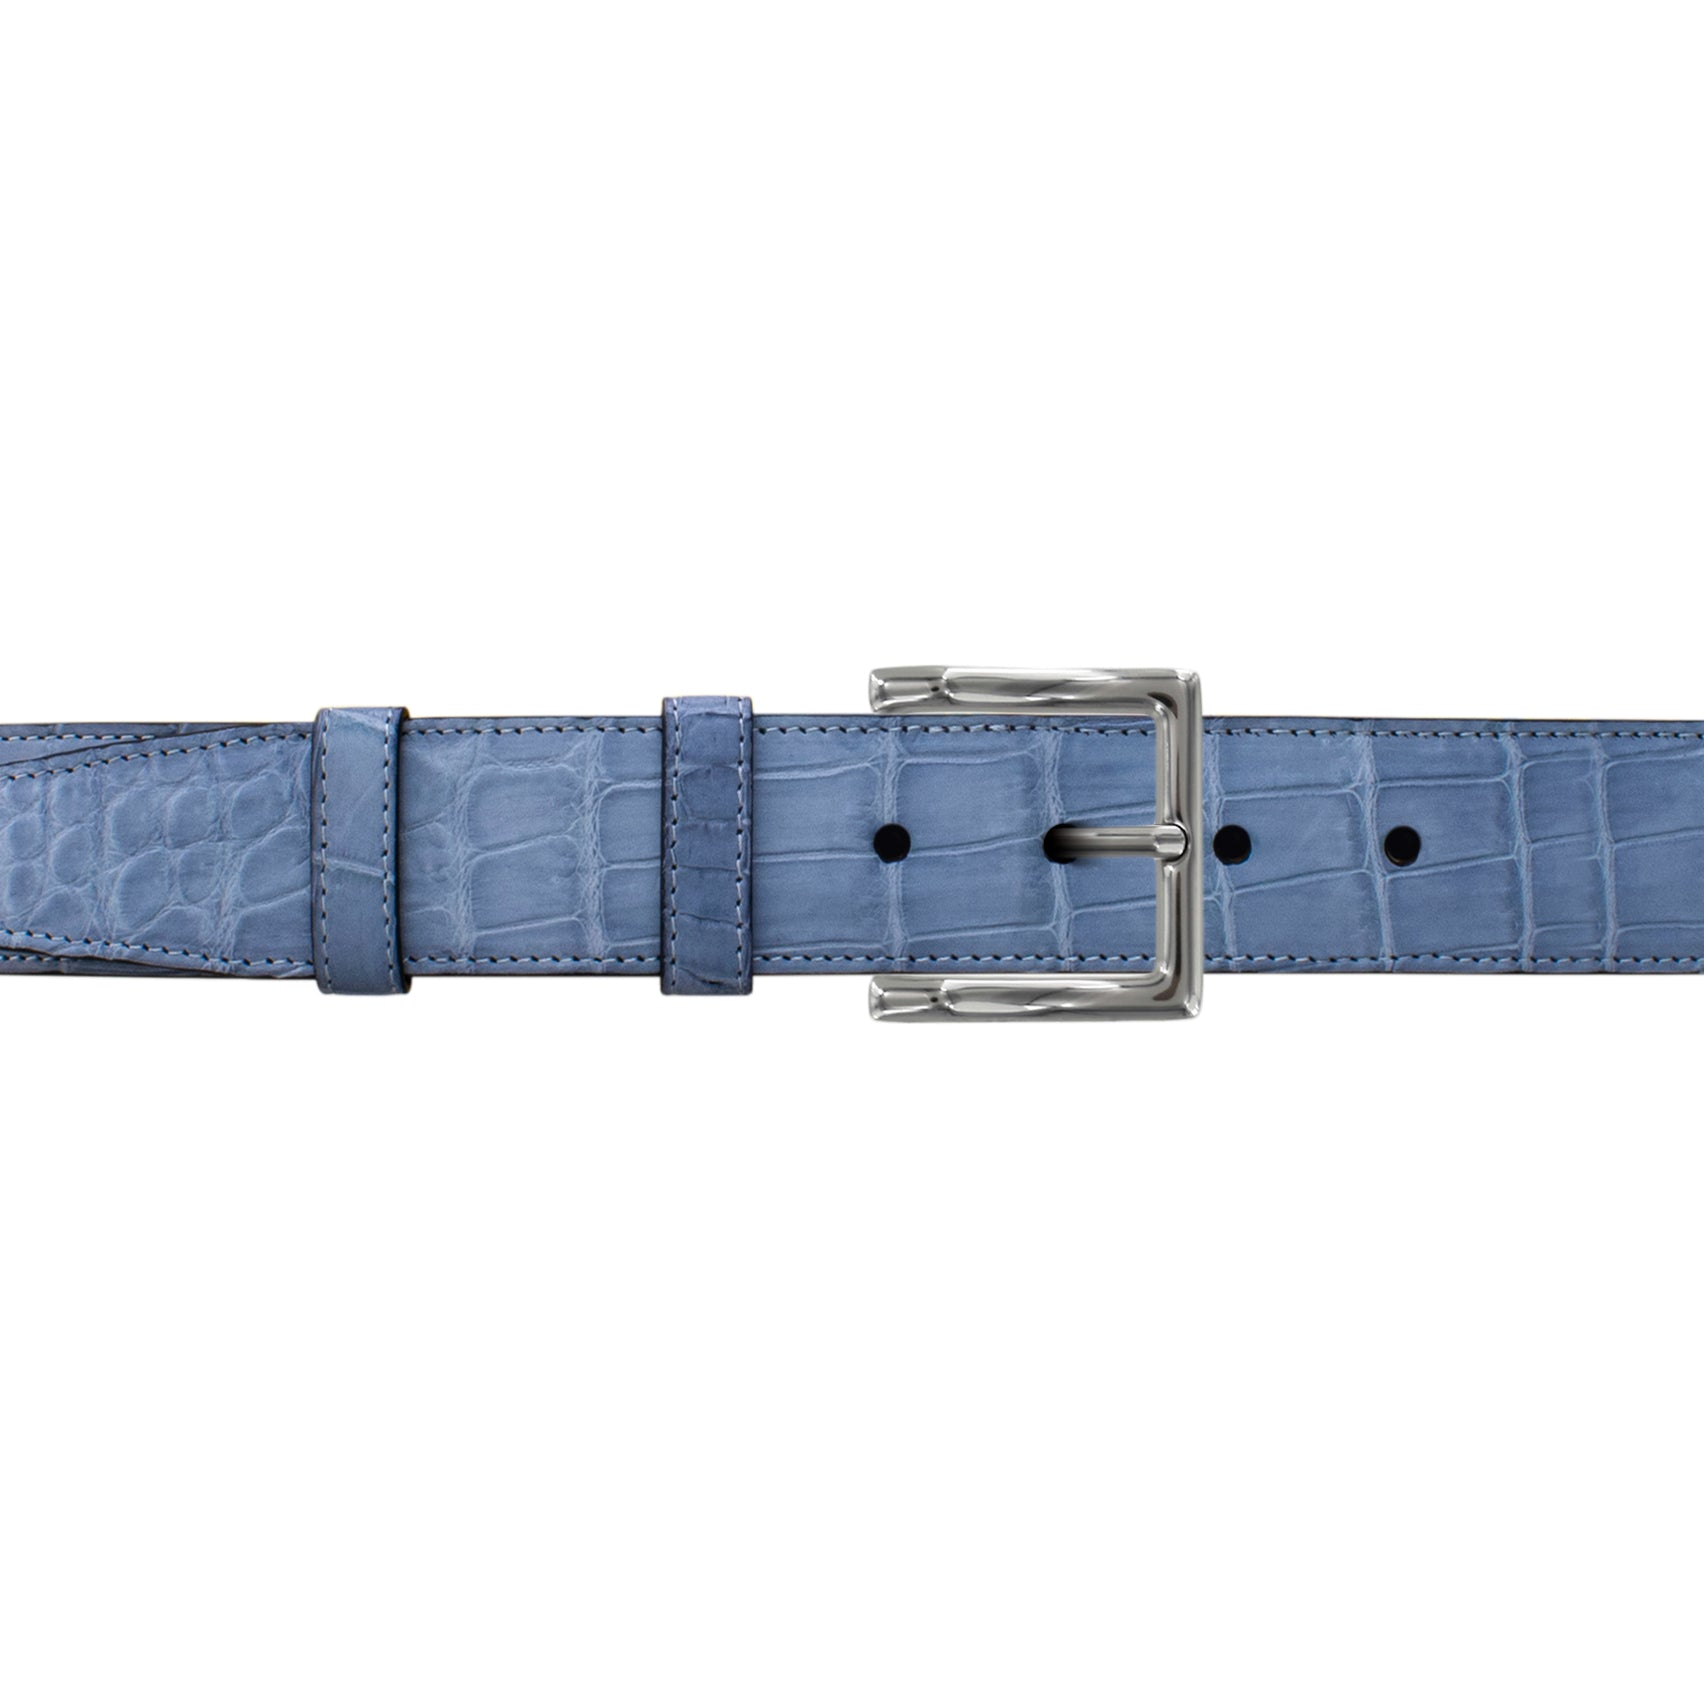 "1 1/2"" Arctic Classic Belt with Regis Dress Buckle in Polished Nickel"